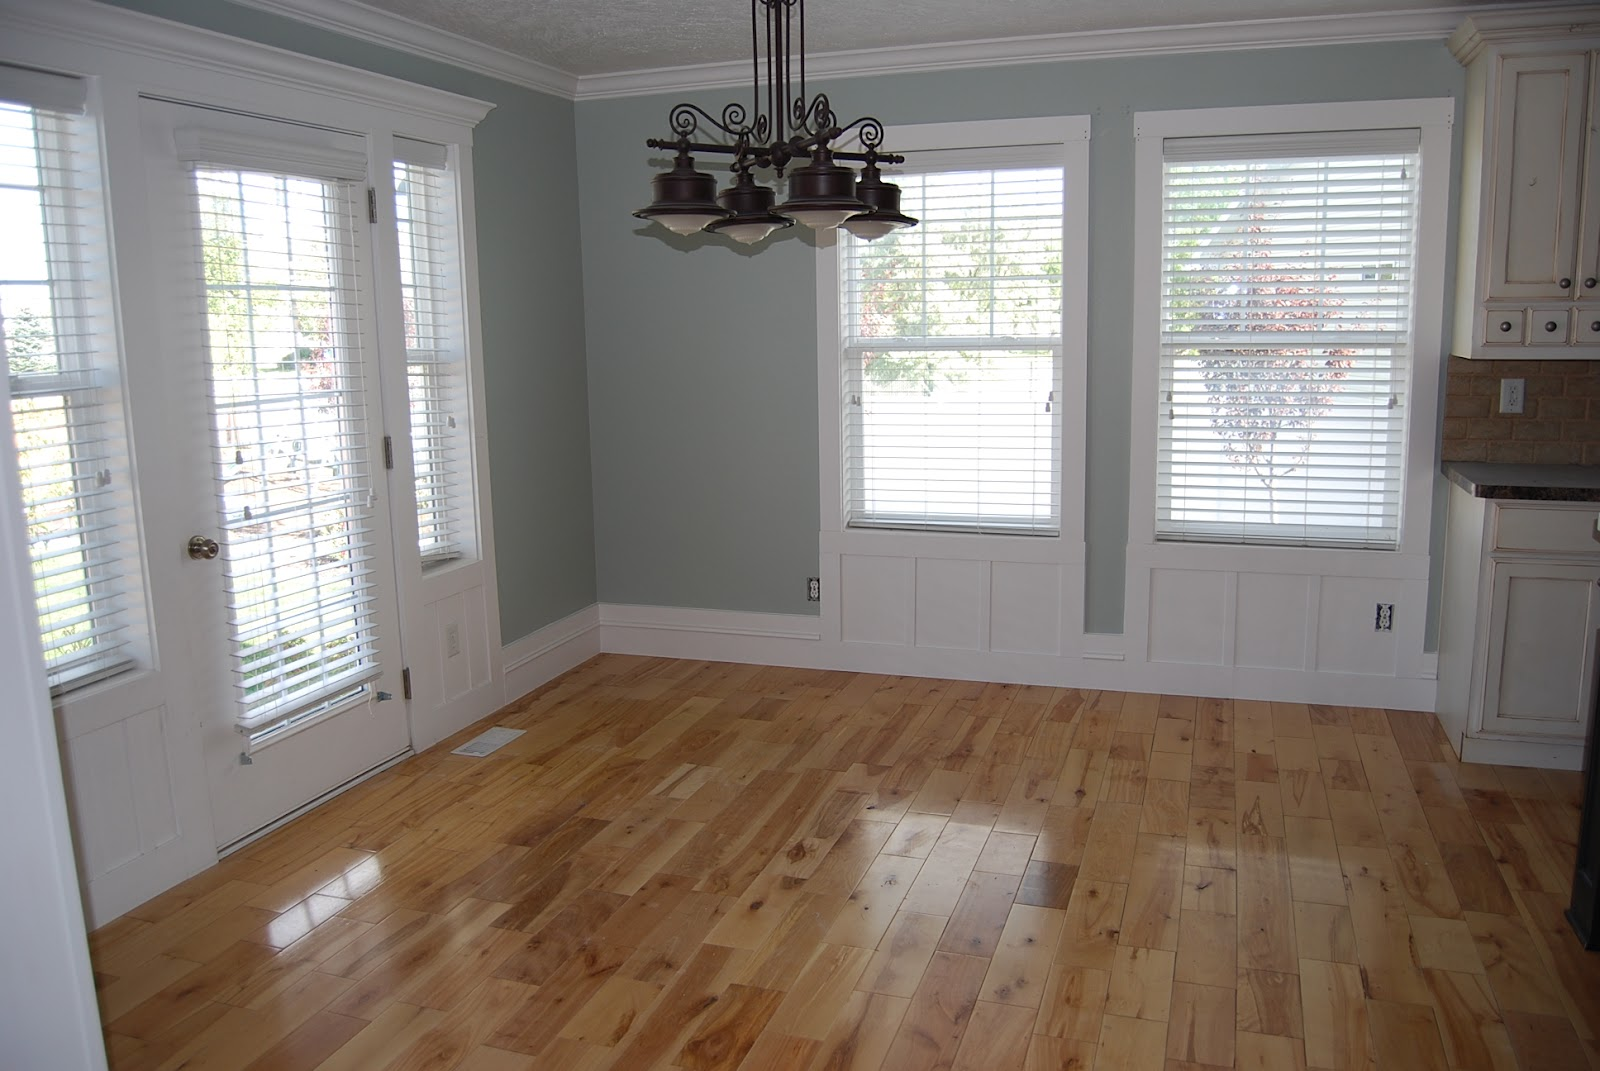 Home by heidi paint and self discovery part 1 - Sherwin williams comfort gray living room ...